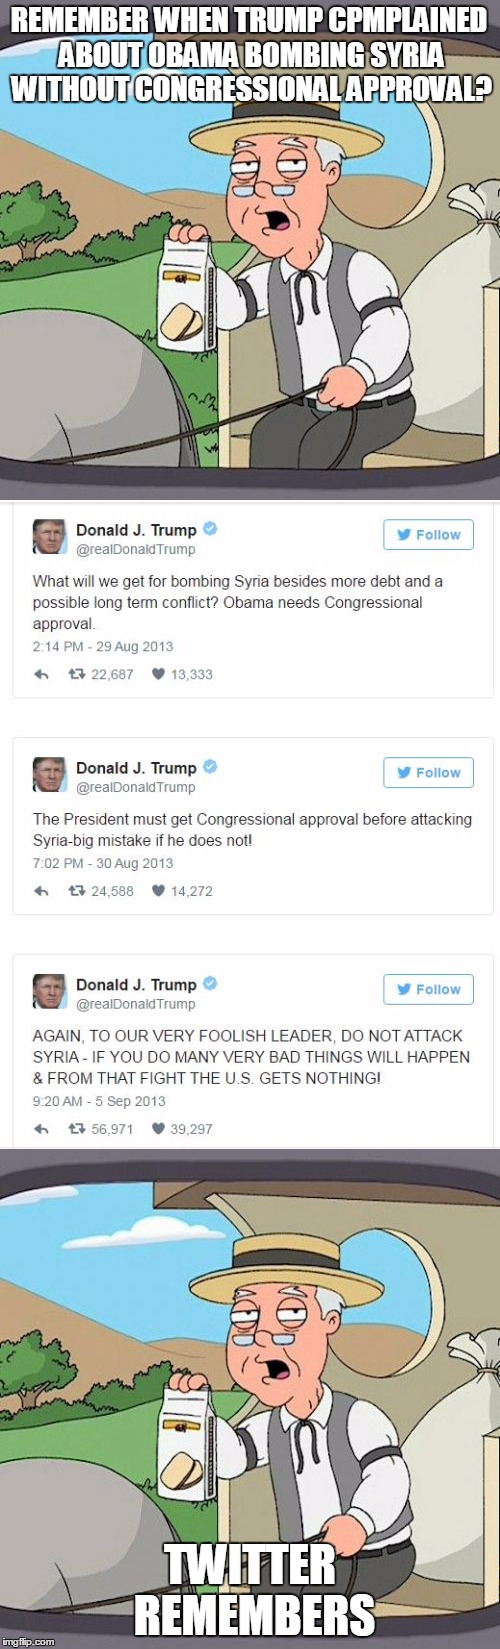 So....is Trump now making big mistakes as he said Obama was making? | REMEMBER WHEN TRUMP CPMPLAINED ABOUT OBAMA BOMBING SYRIA WITHOUT CONGRESSIONAL APPROVAL? TWITTER REMEMBERS | image tagged in donald trump,hypocrite | made w/ Imgflip meme maker